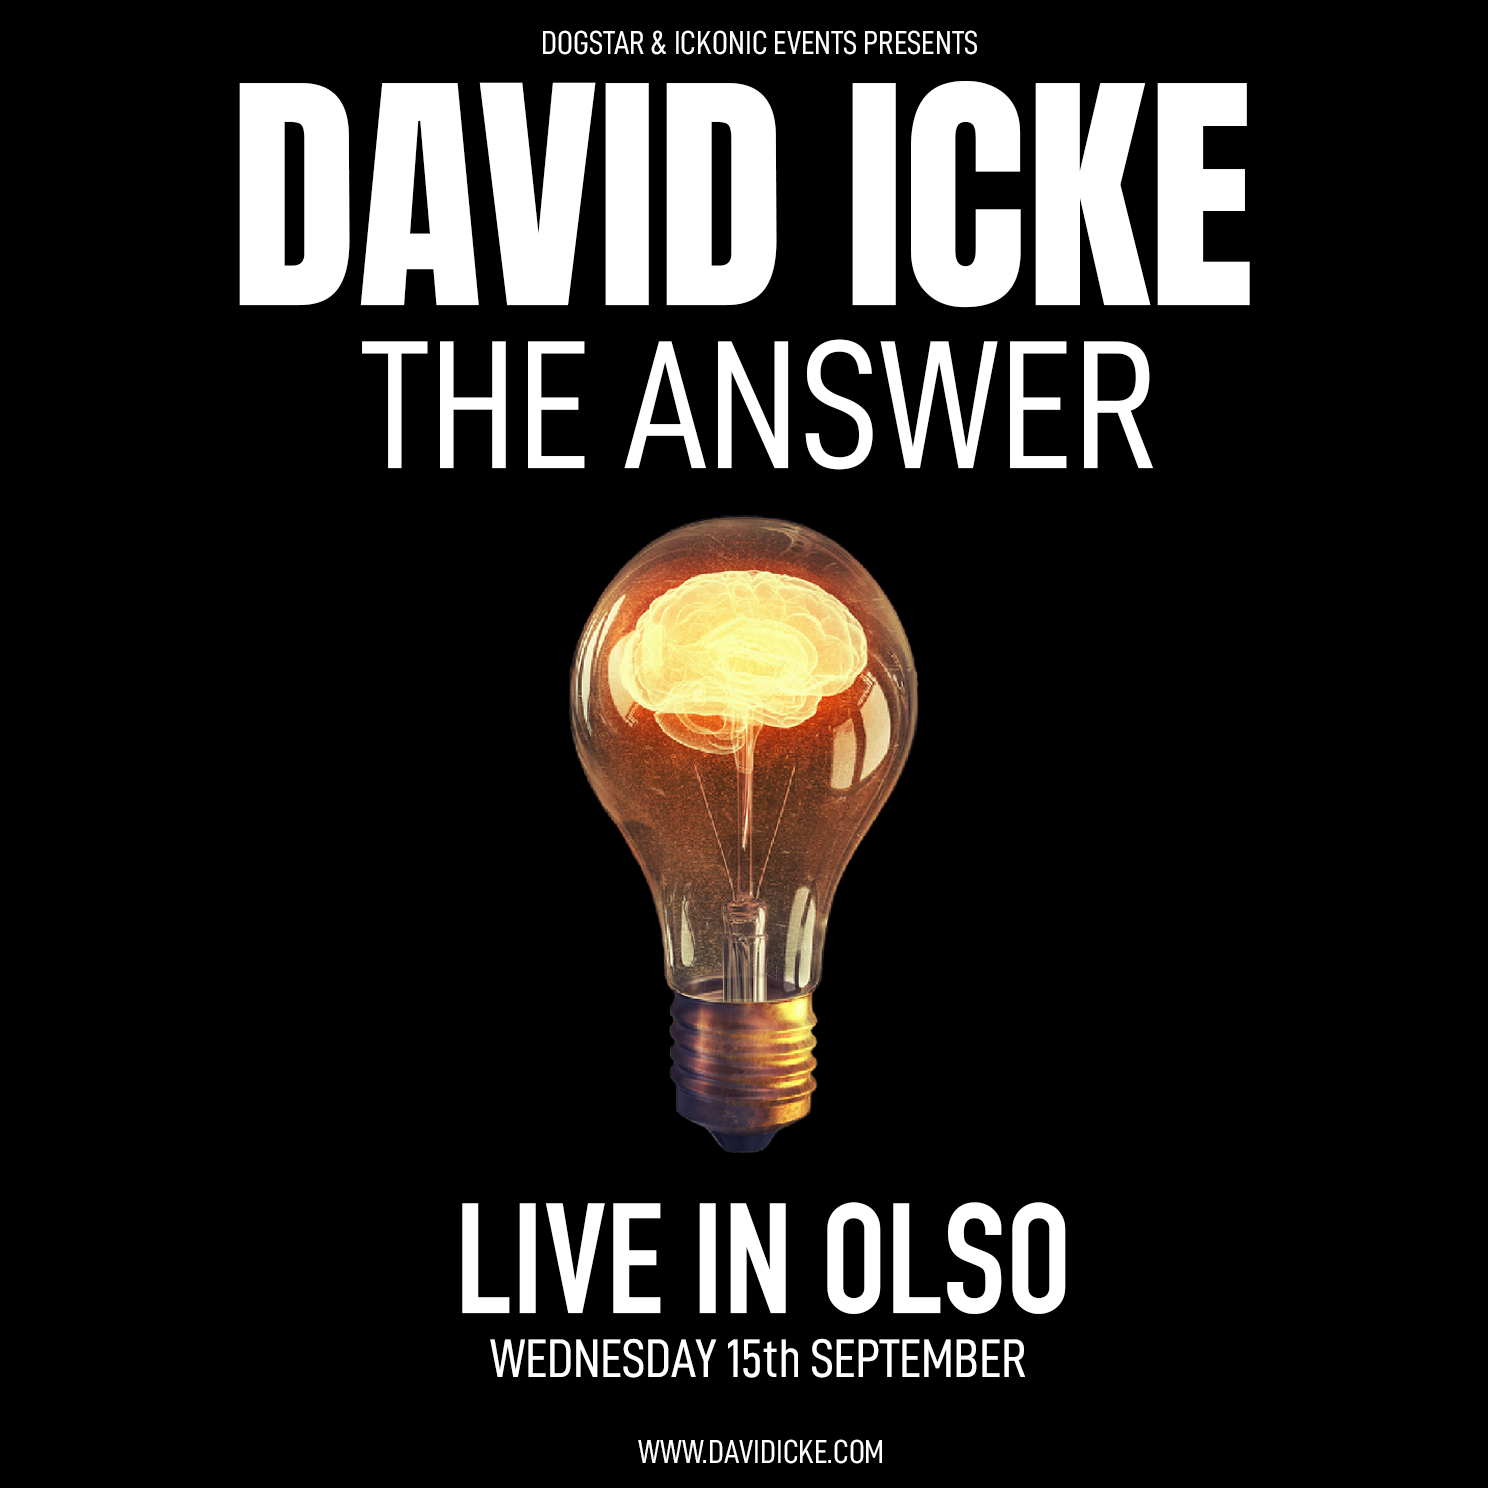 David Icke - Live In Oslo - The Answer - Wednesday 16th September